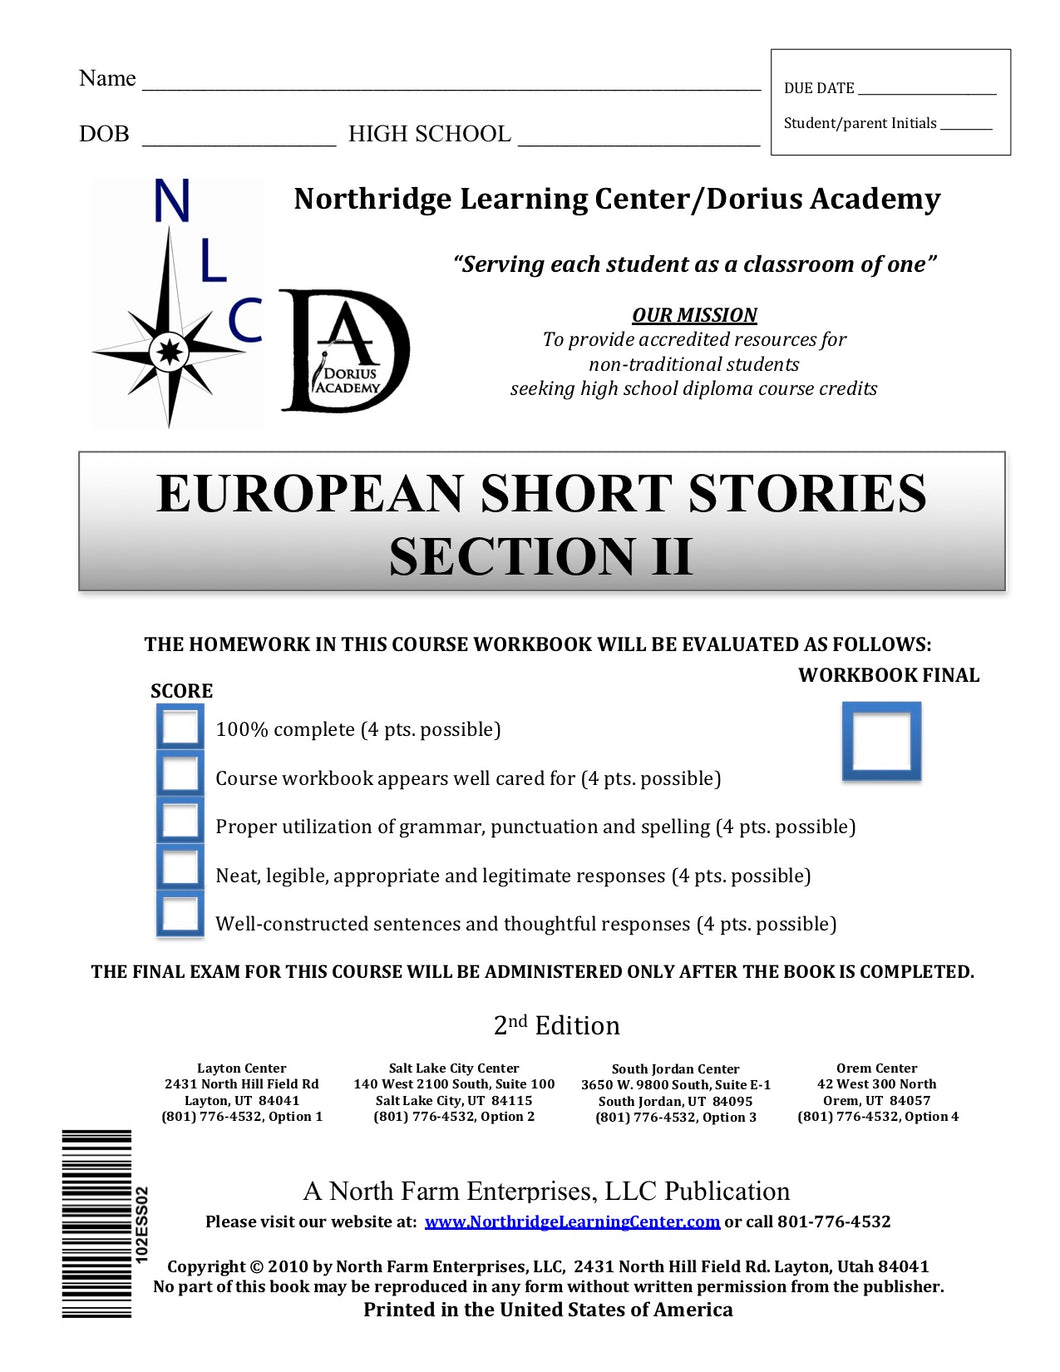 European Short Stories, Sections II